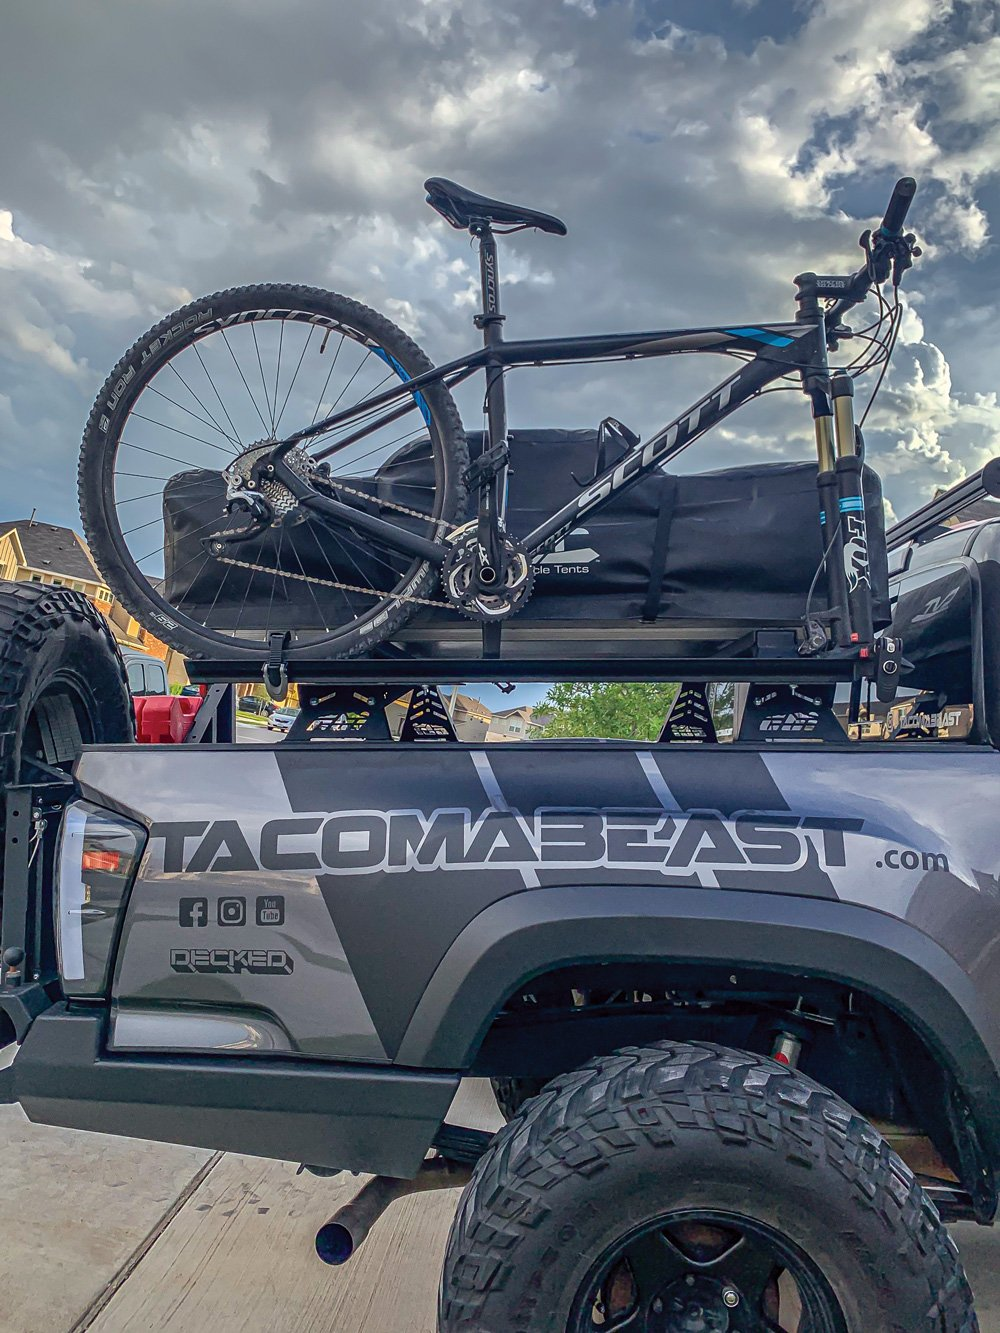 This Tacoma is able to carry it all